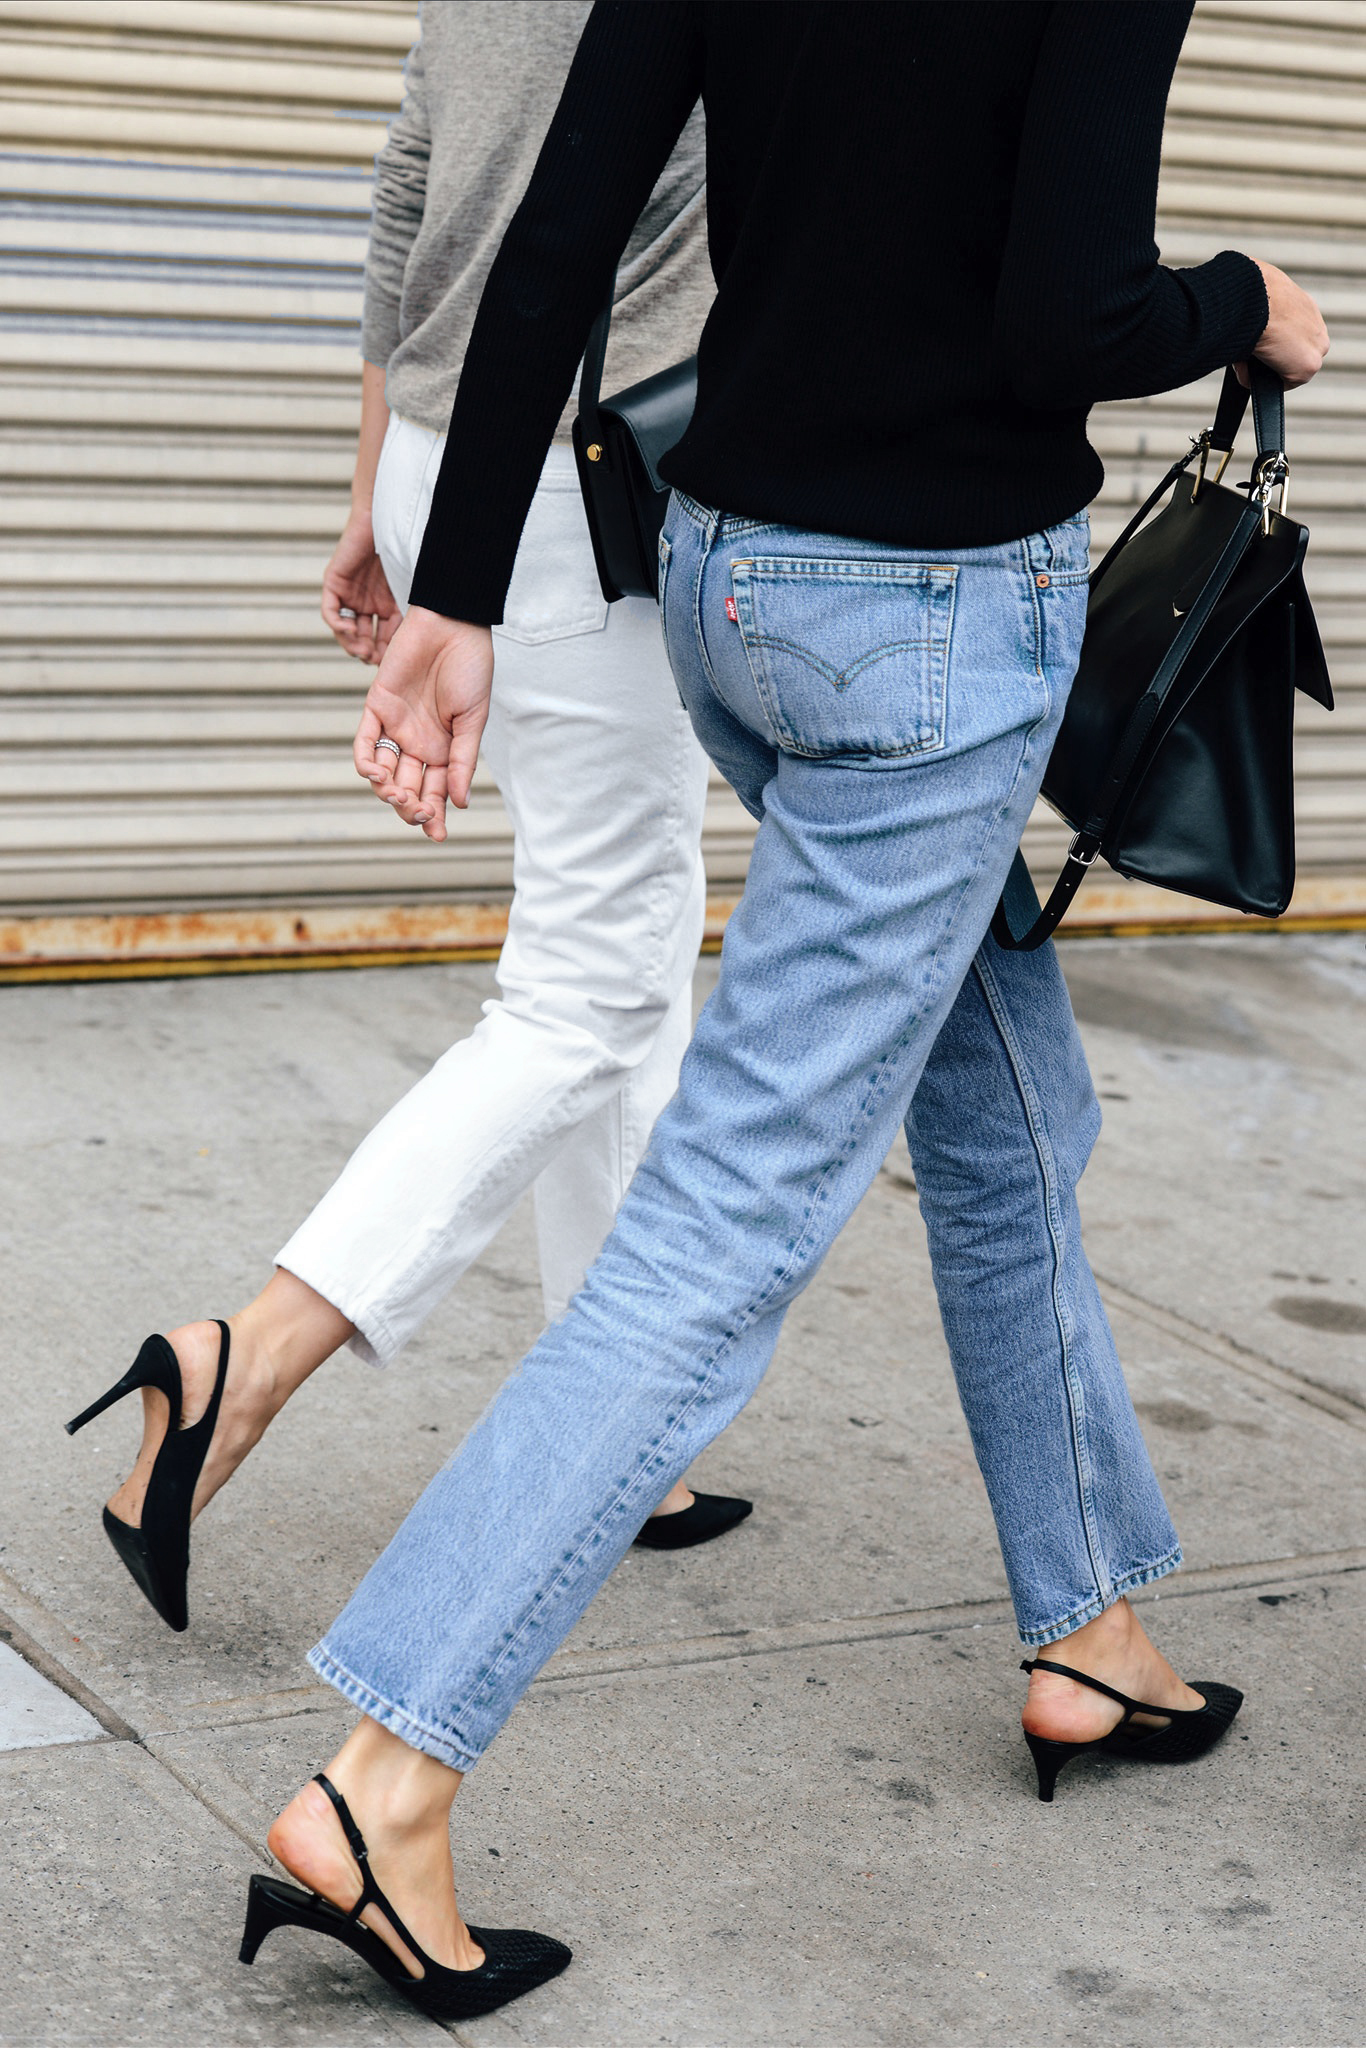 2 Easy Spring Outfit Ideas- Elin Kling in white jeans, and black sling back heels — black top, vintage Levi's jeans, and heels